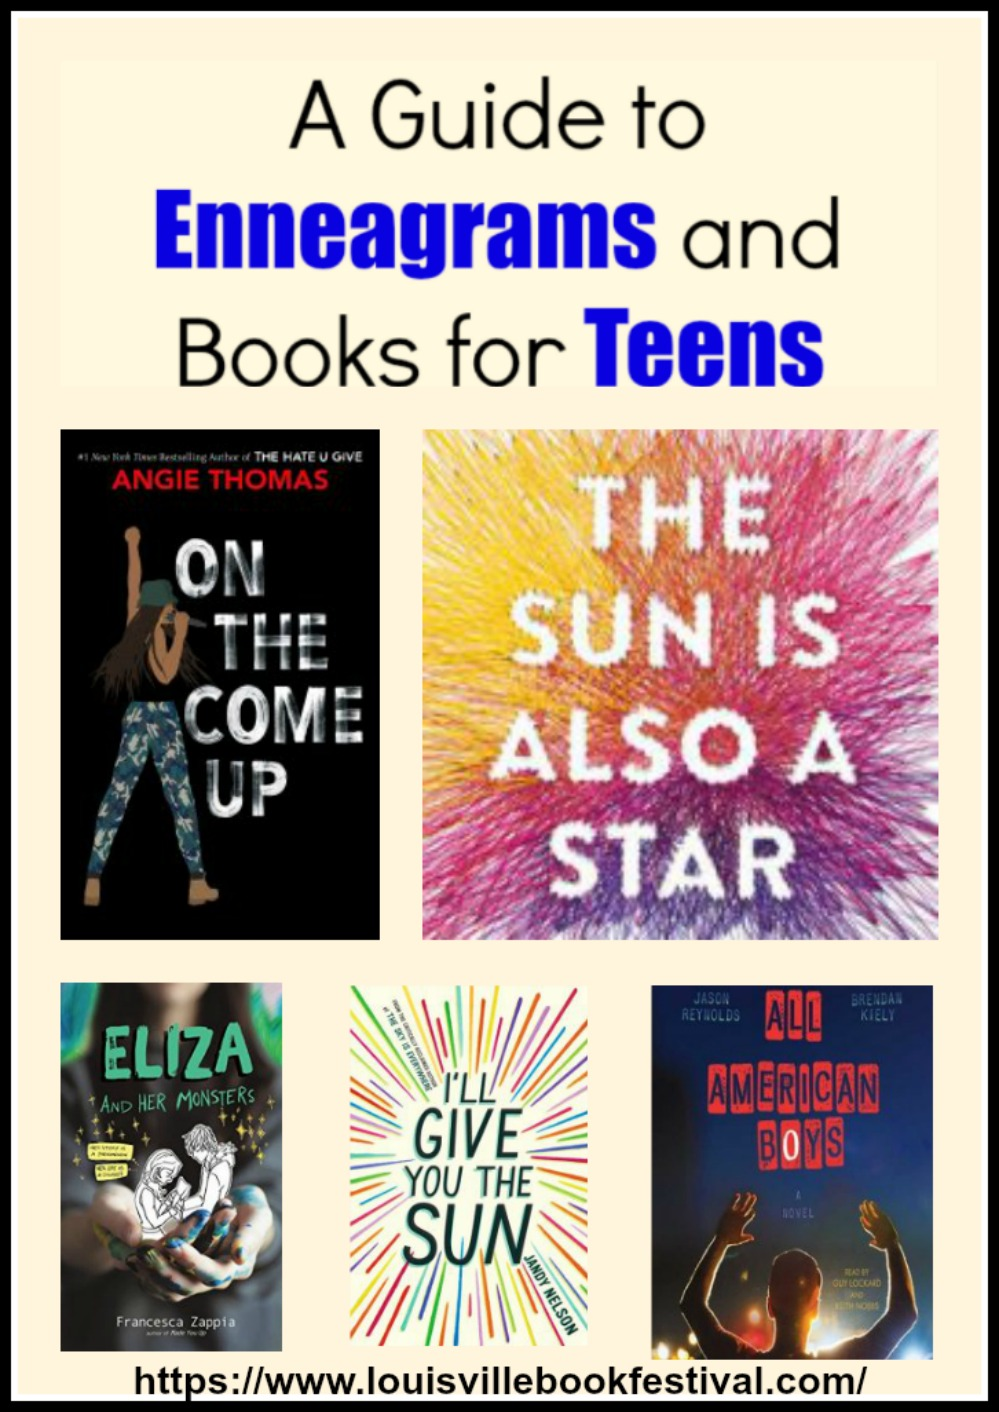 Enneagrams and Books for Teens